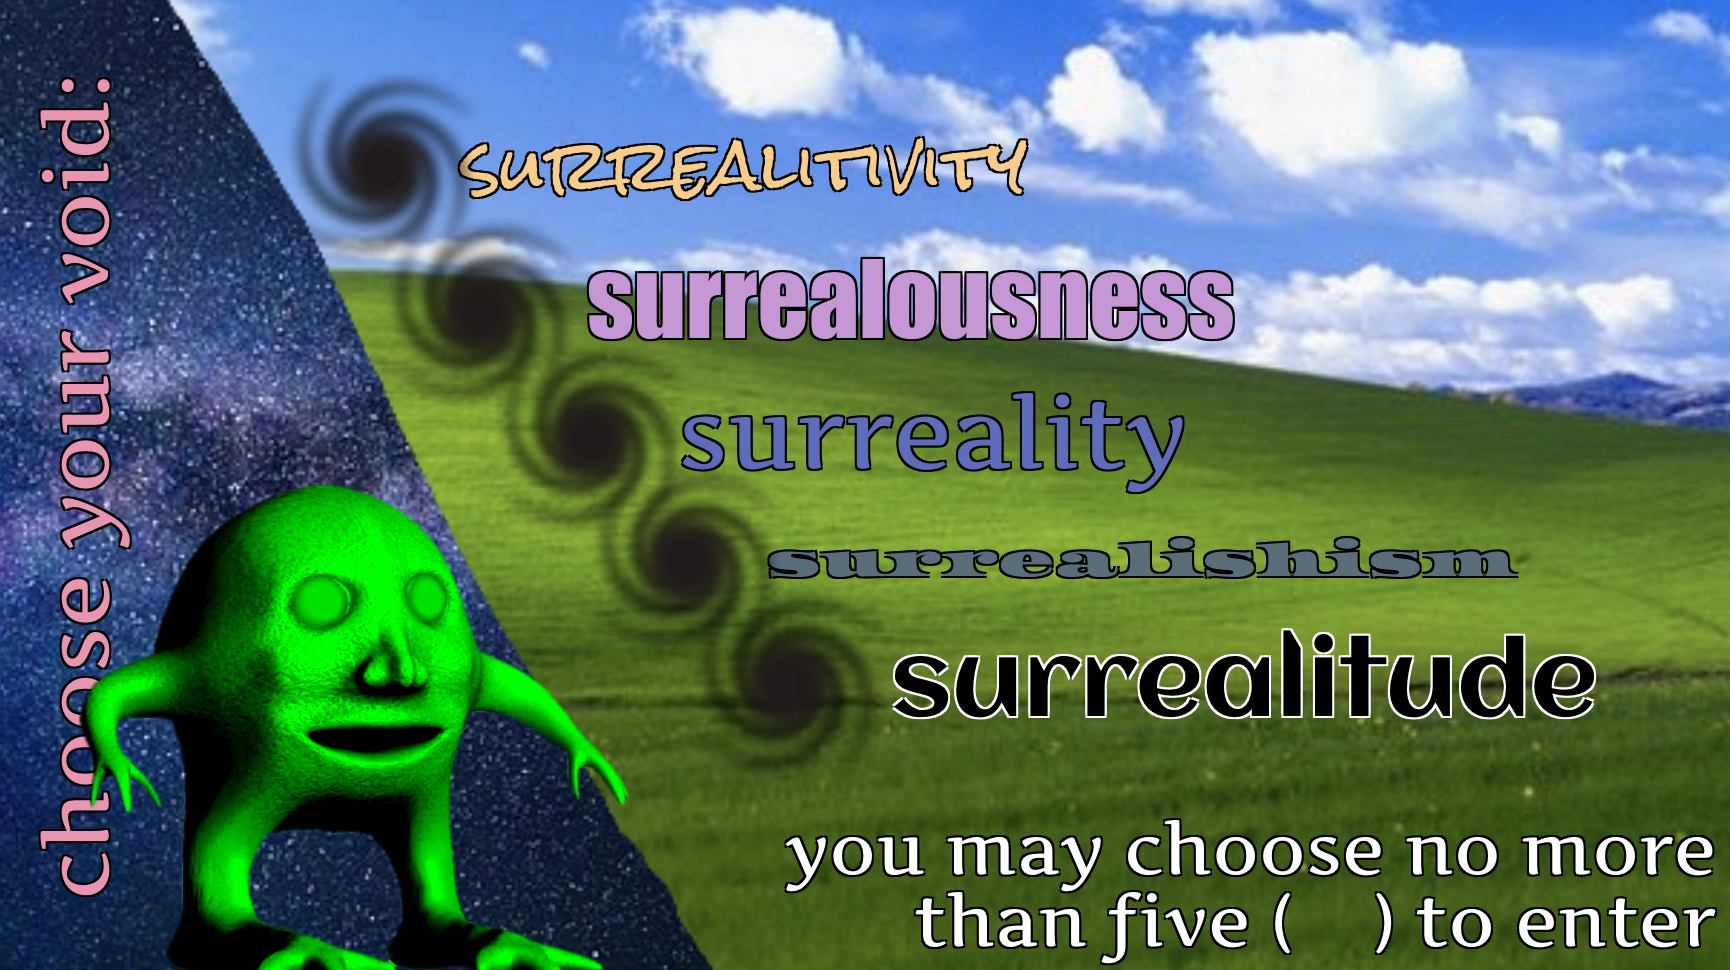 Surreal Memes: What, Why, and How